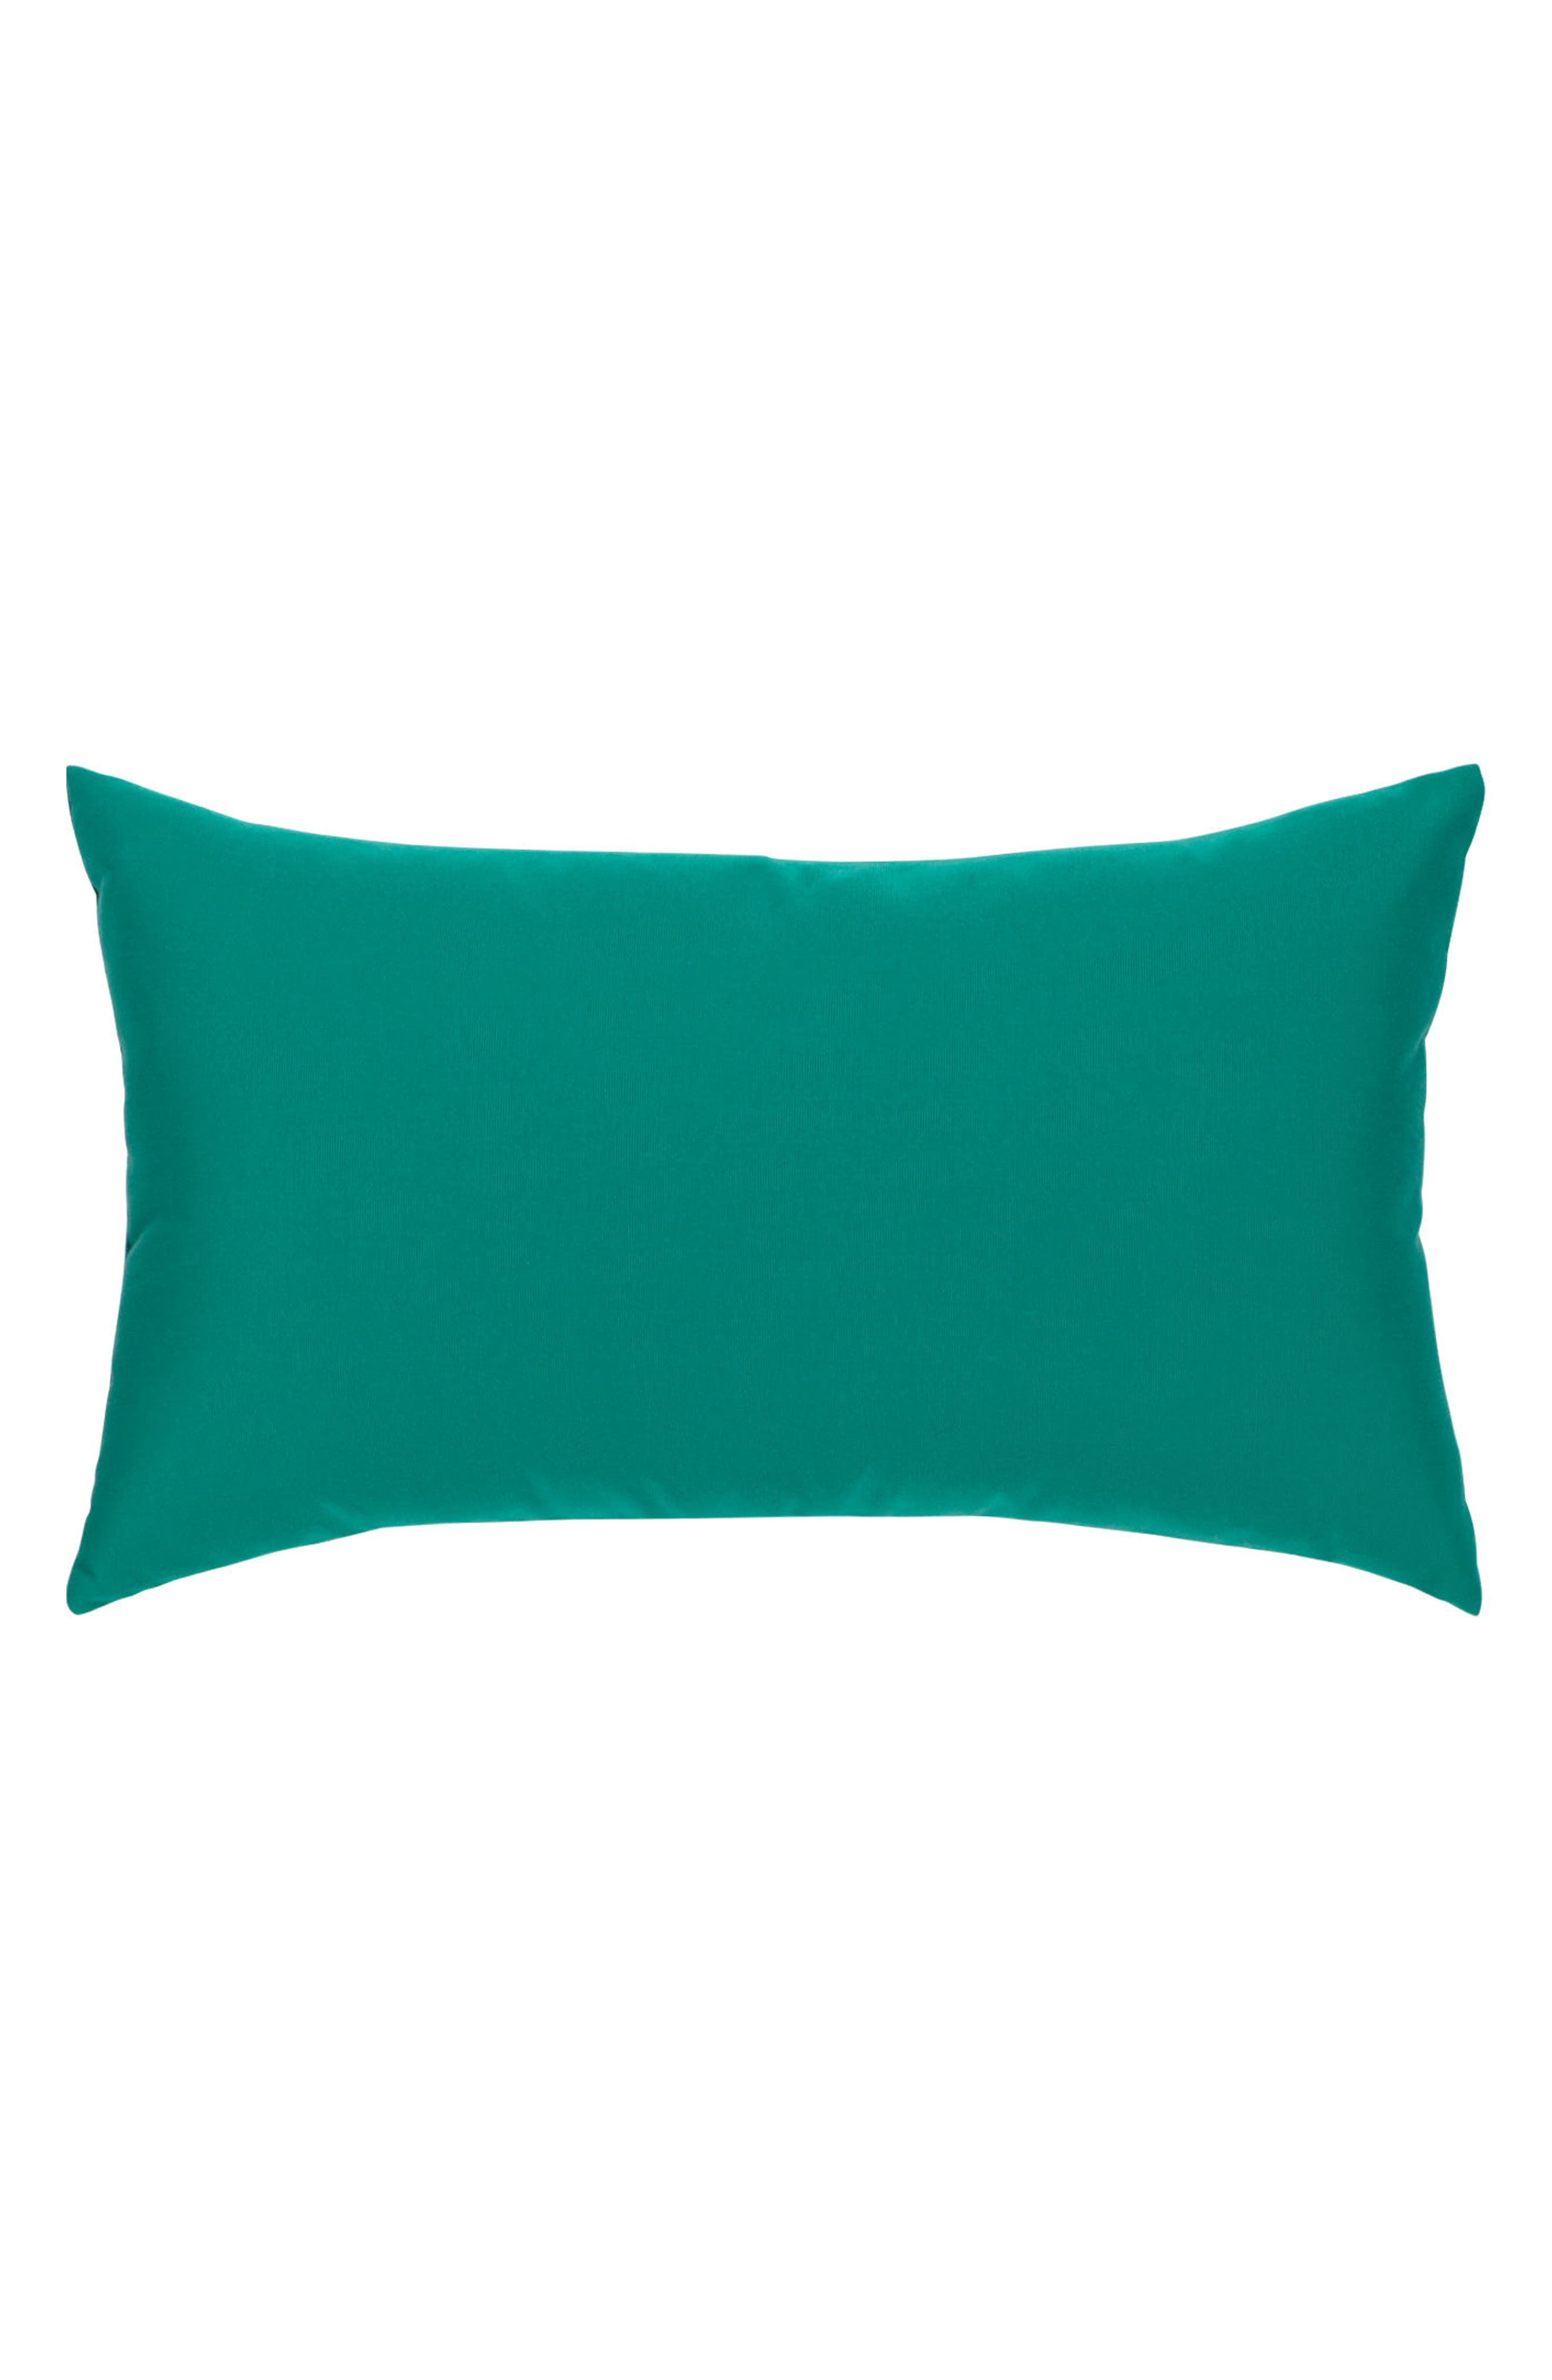 Eden Texture Indoor/Outdoor Accent Pillow,                             Alternate thumbnail 2, color,                             Blue Green